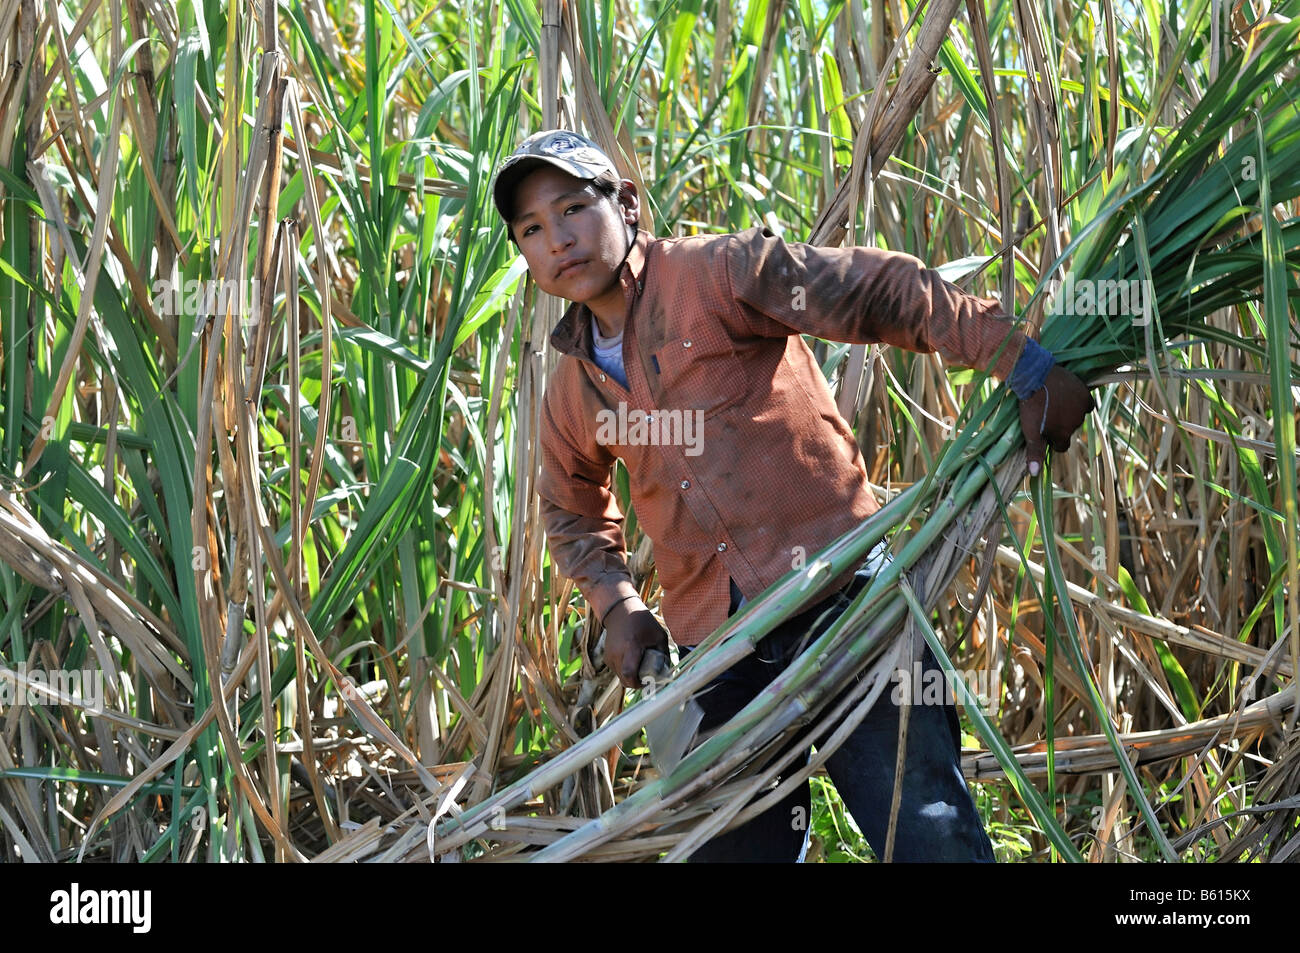 Underage migrant worker harvesting sugar cane for the production of ethanol and biodiesel, Montero, Santa Cruz, - Stock Image